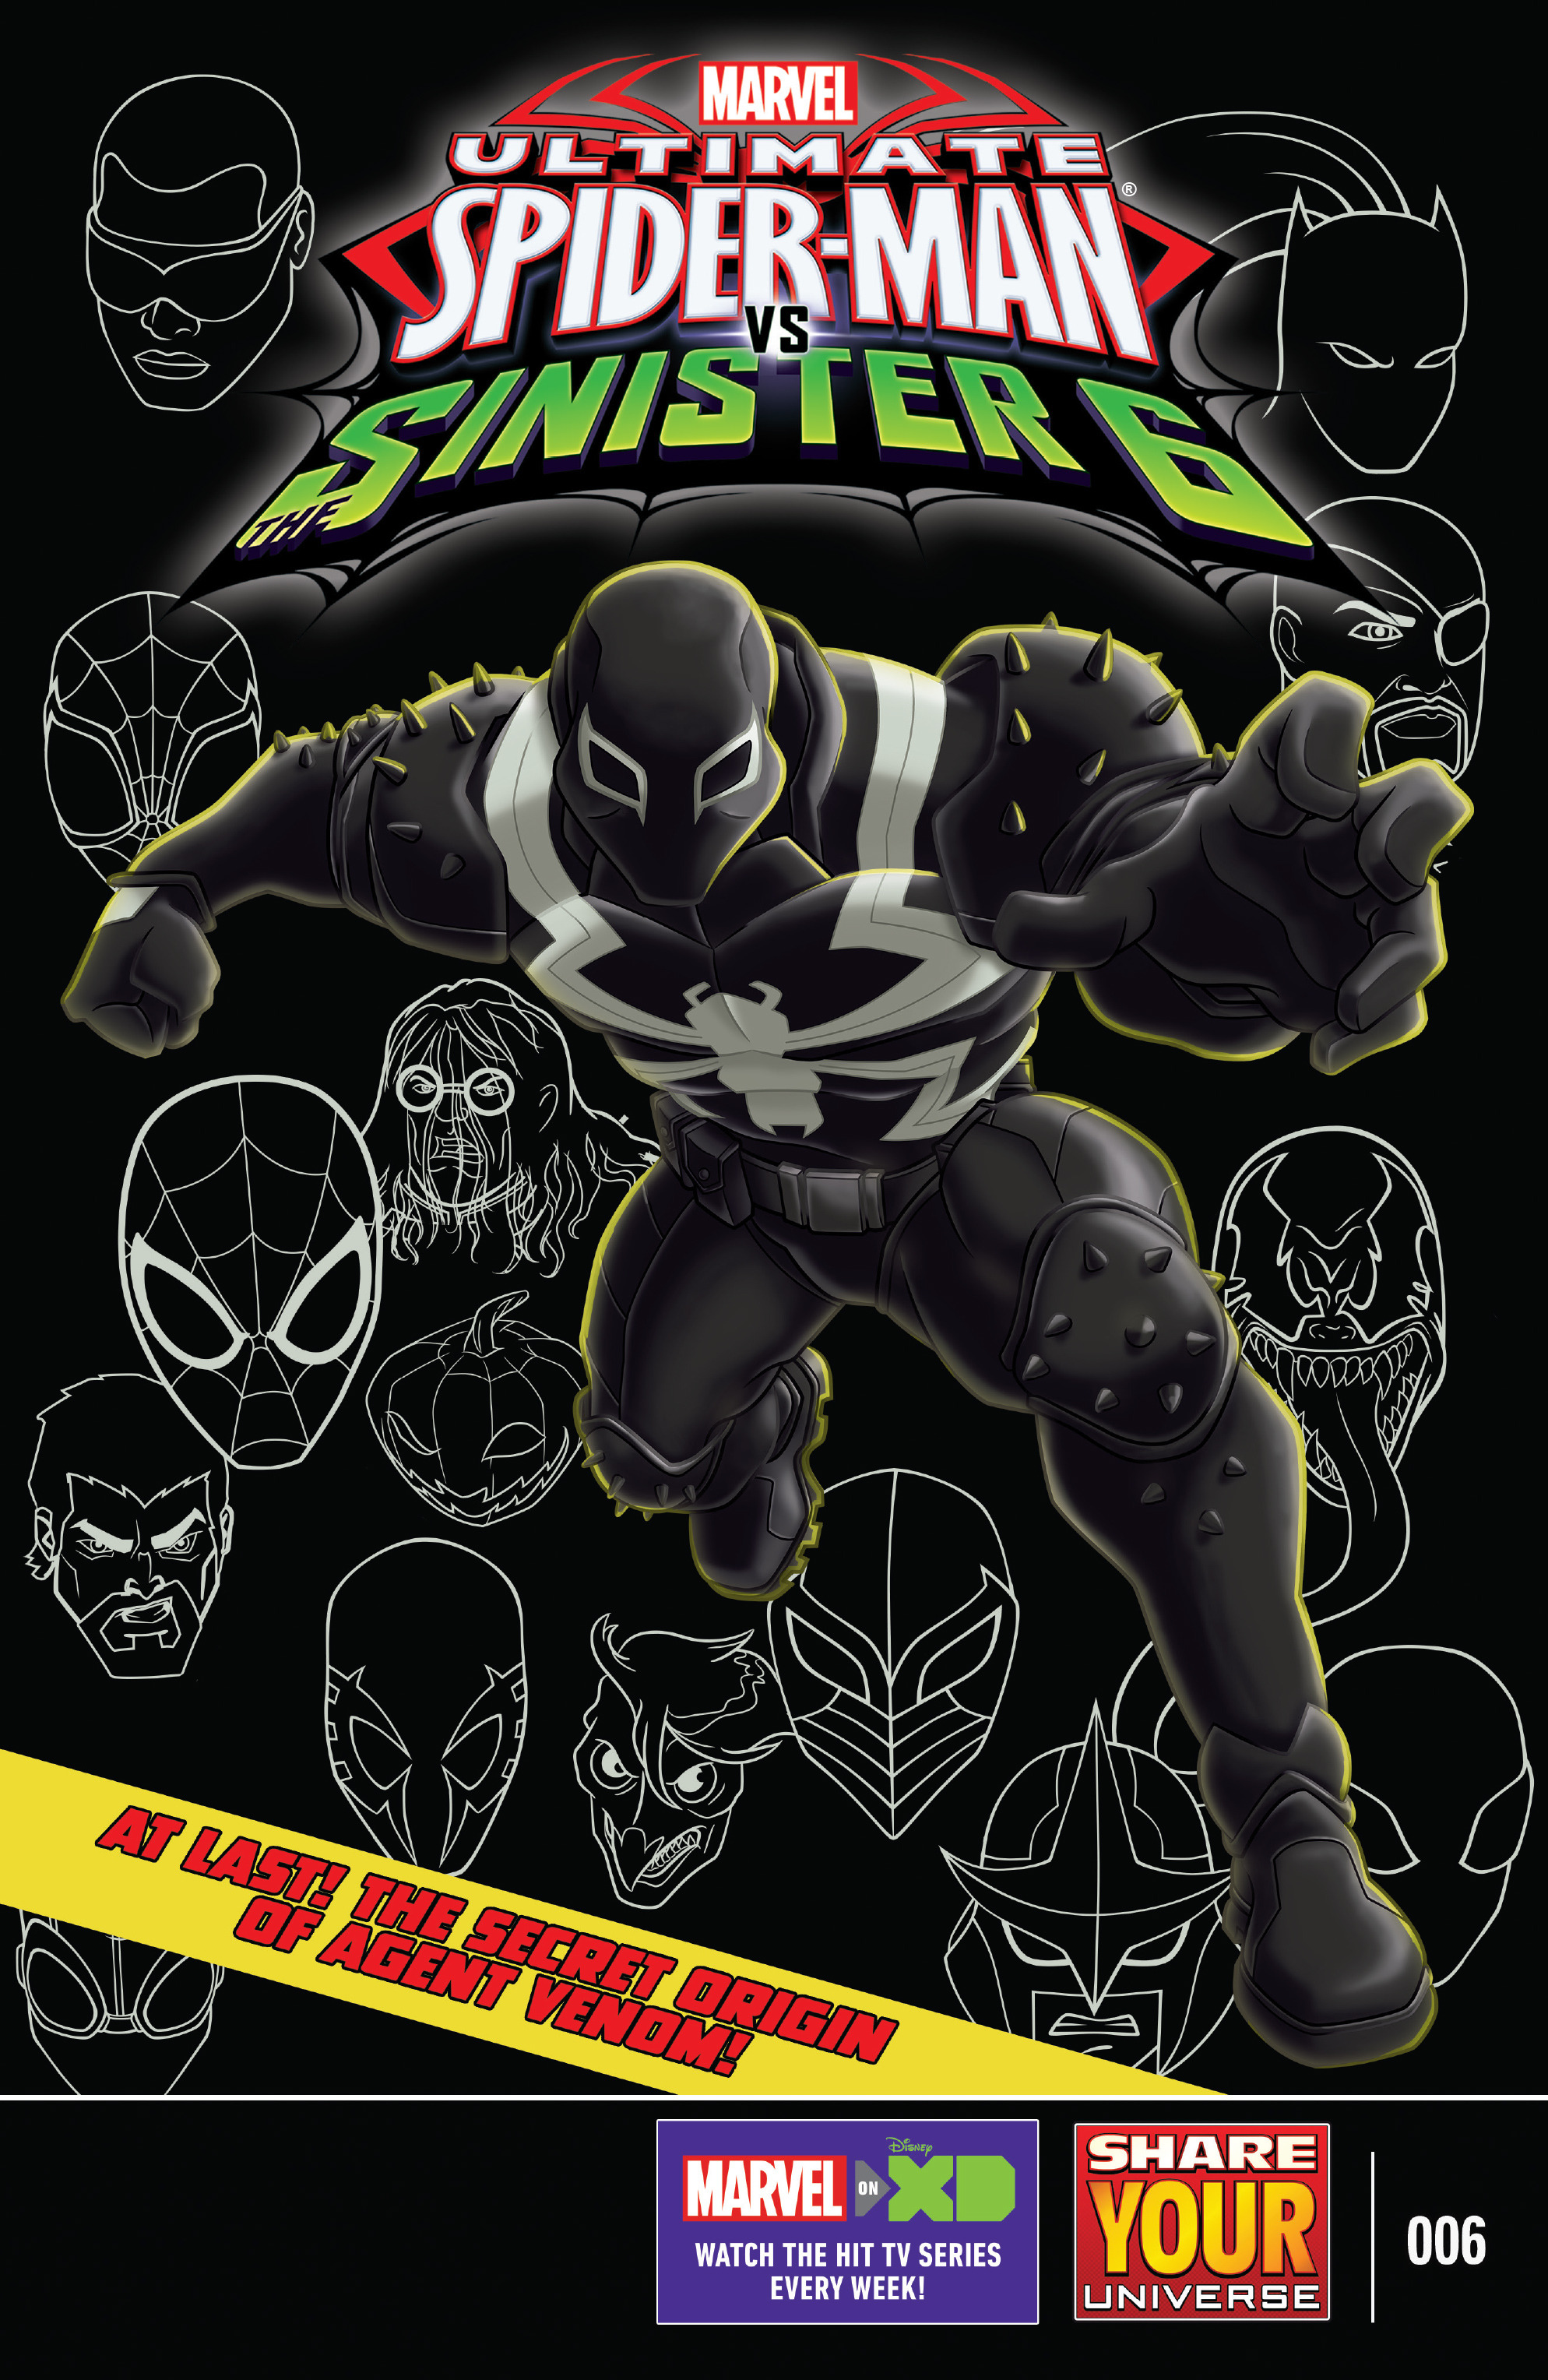 marvel universe ultimate spider man vs the sinister six chapter 6 pic